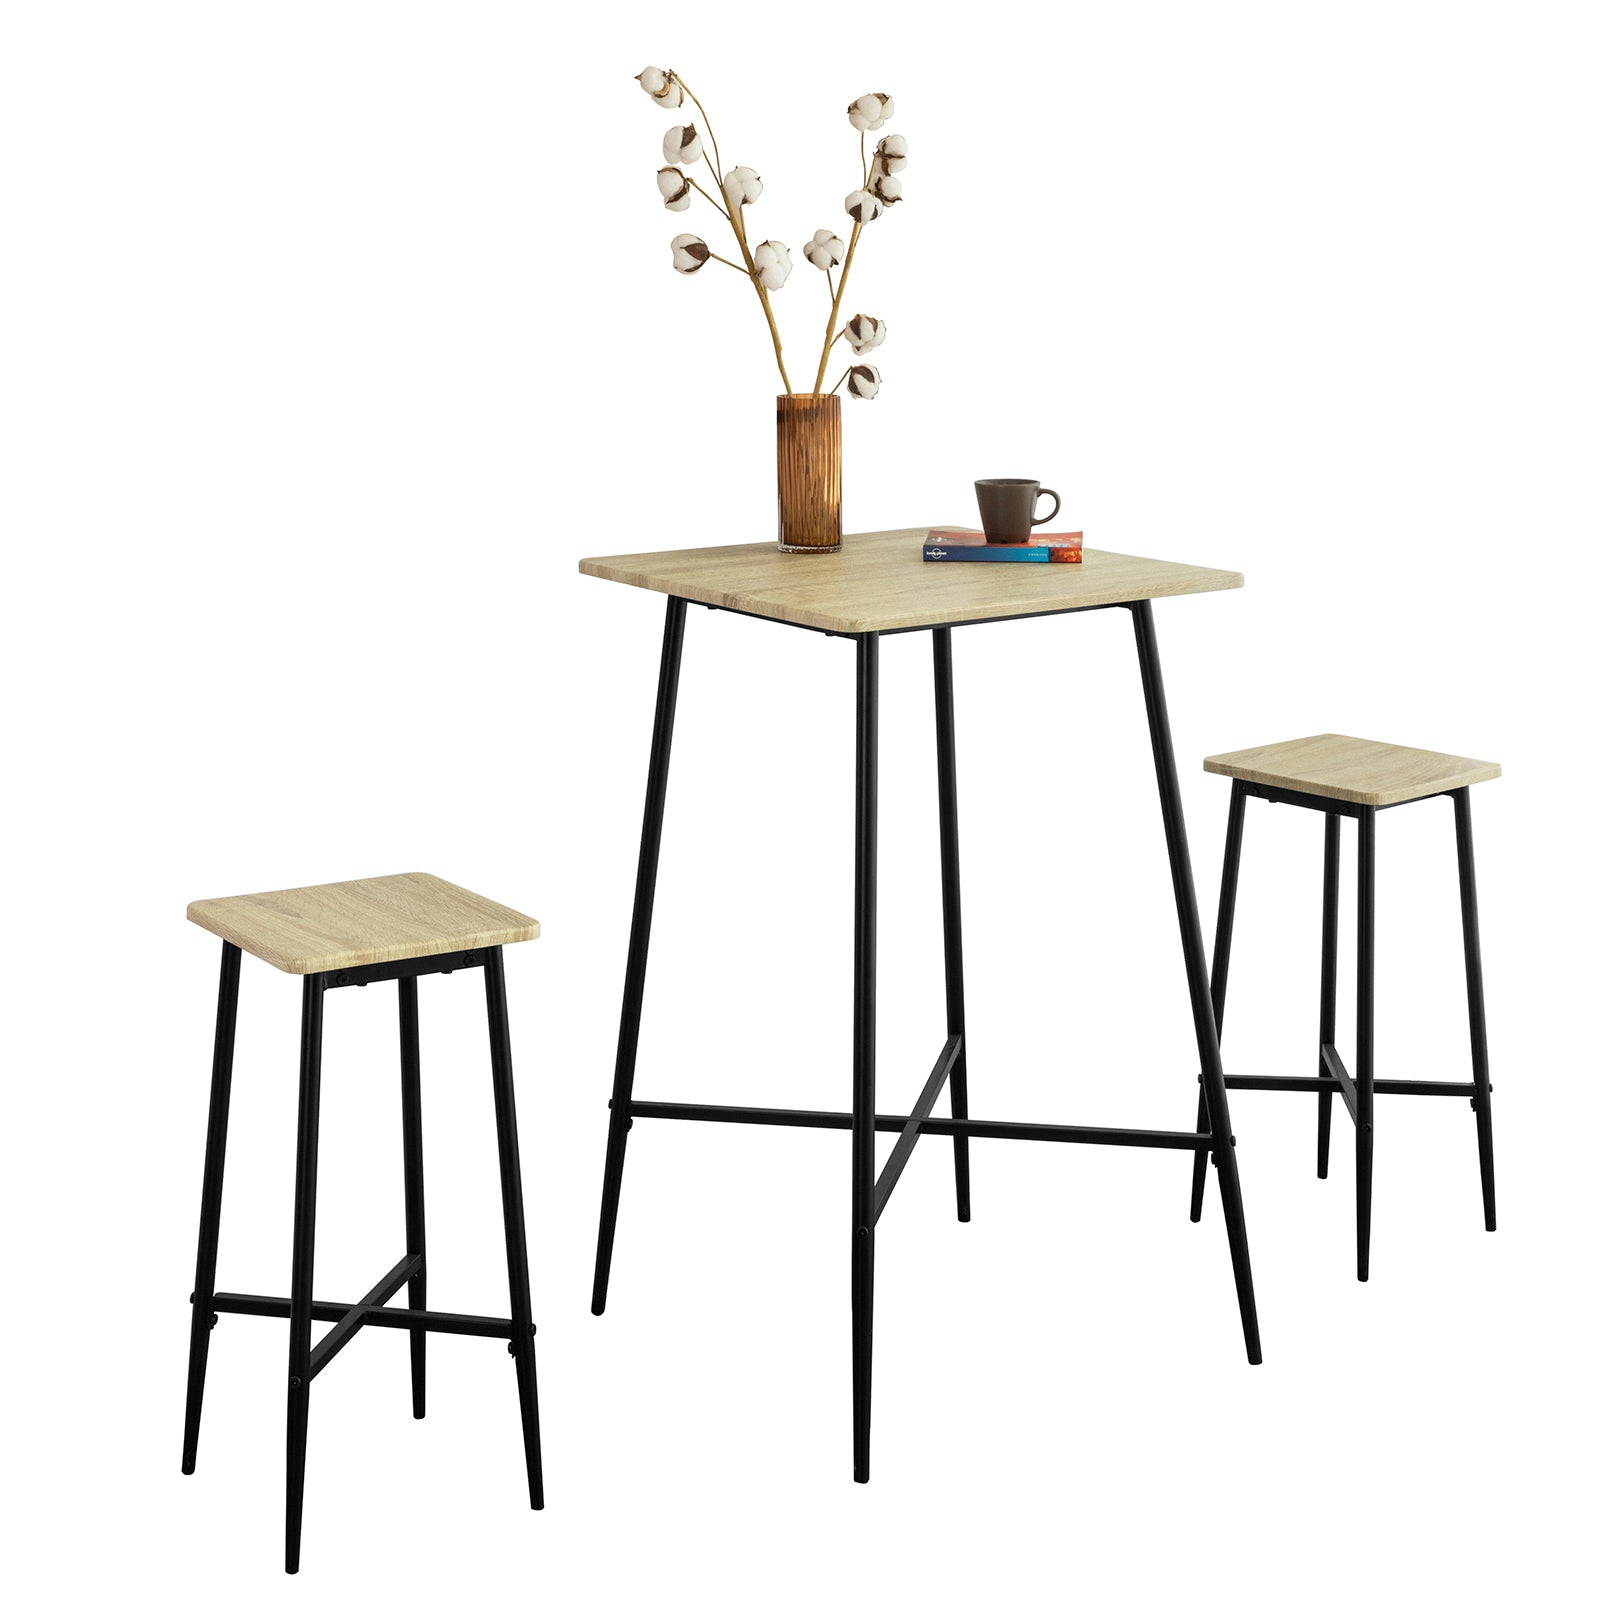 SoBuy 3-Piece Bar Table Set with 2 High Stools Home Bar Cabinet Dining Table, OGT48-N